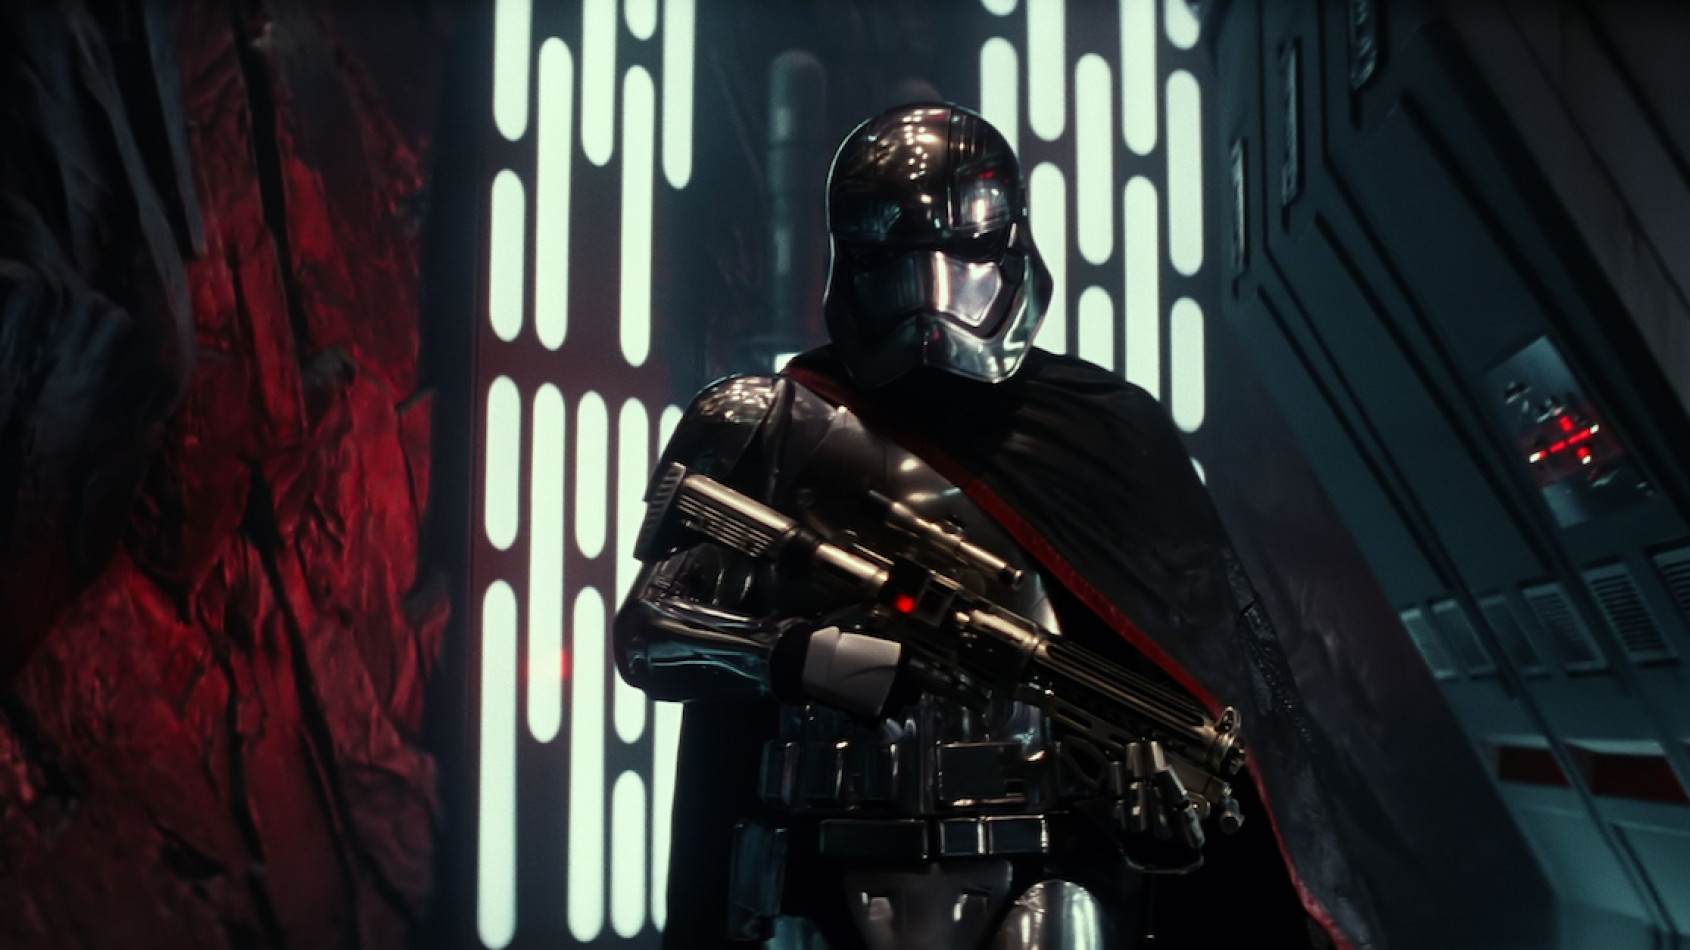 Celebration: un roman pour la Capitaine Phasma